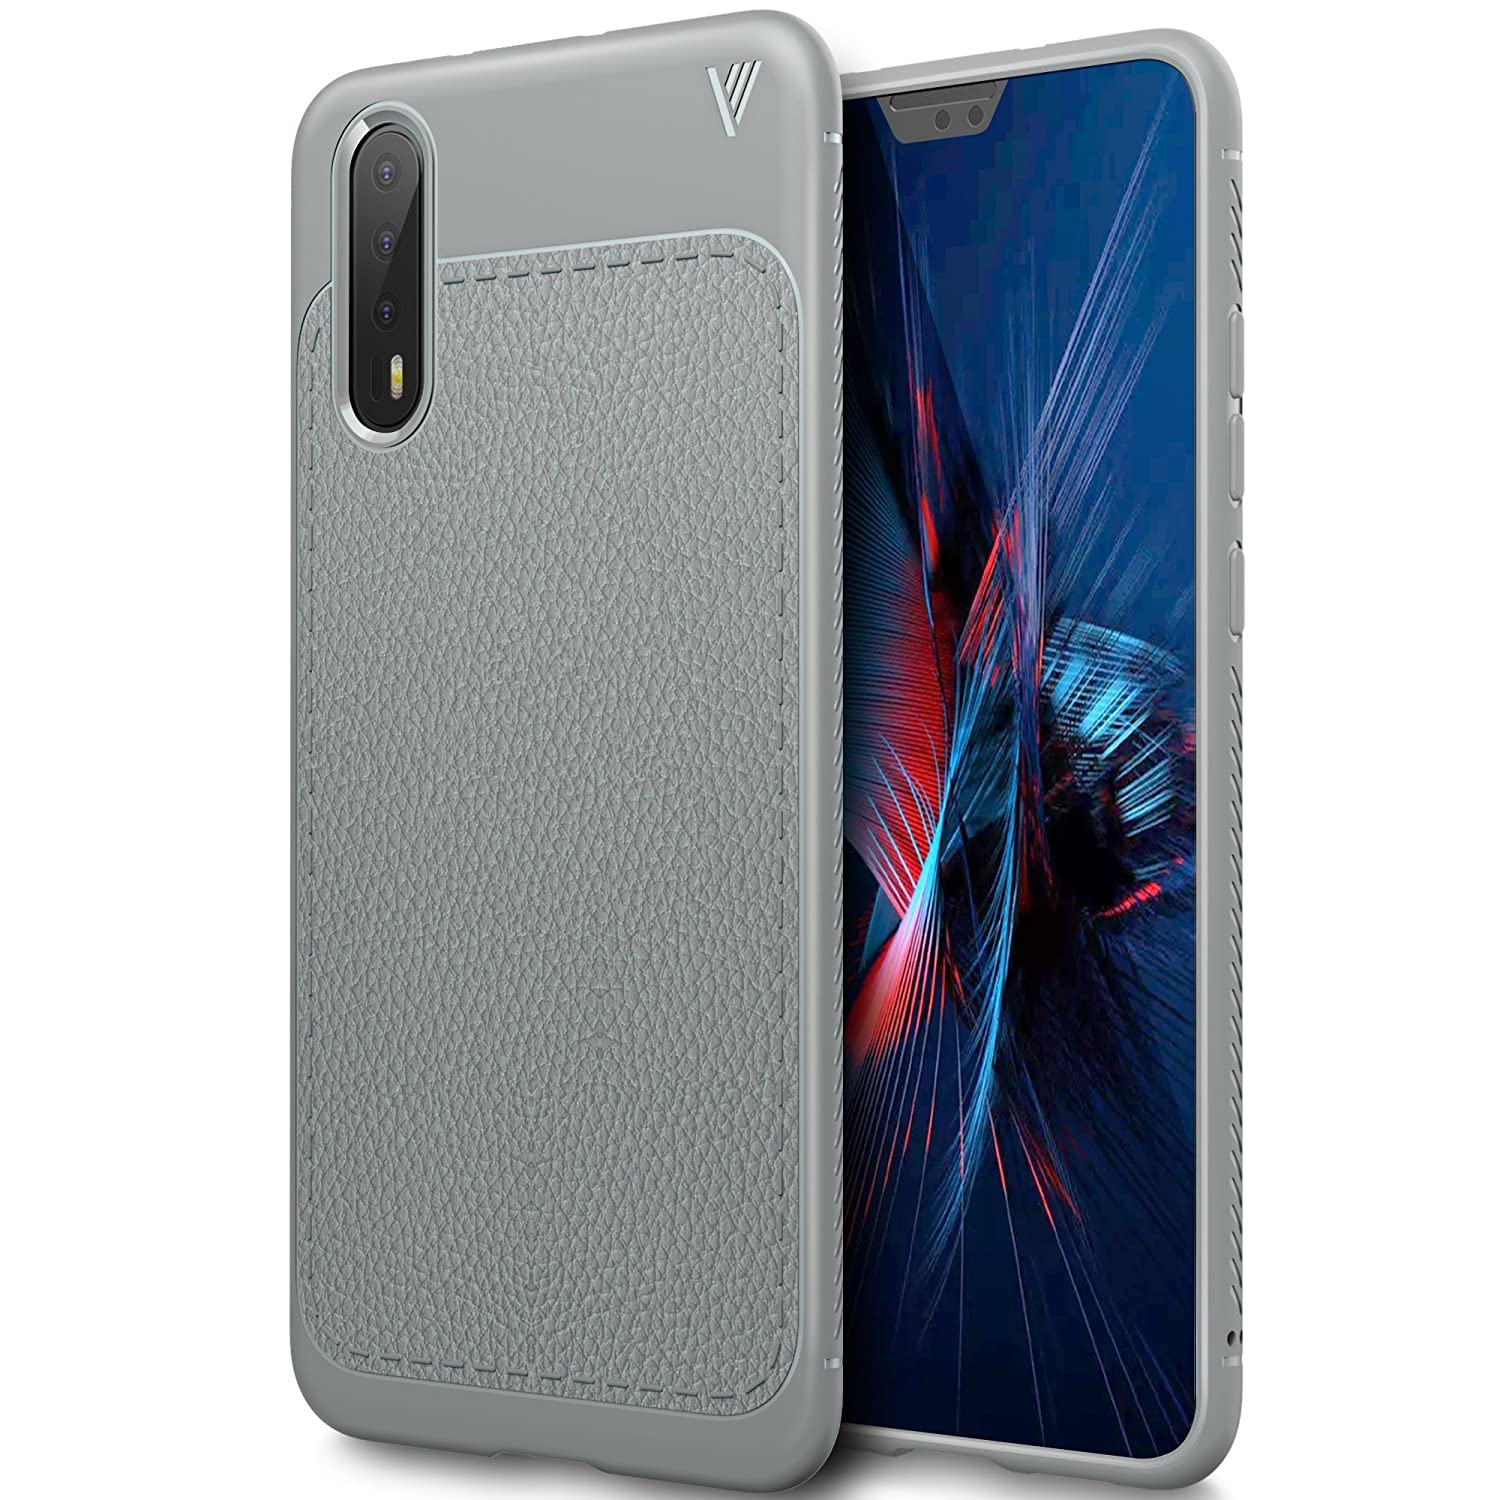 Huawei P20 Pro case, KuGi Huawei P20 Pro case, SS [Scratch Resistant] Premium Flexible Soft Anti Slip TPU Case for Huawei P20 Pro smartphone(Gray)